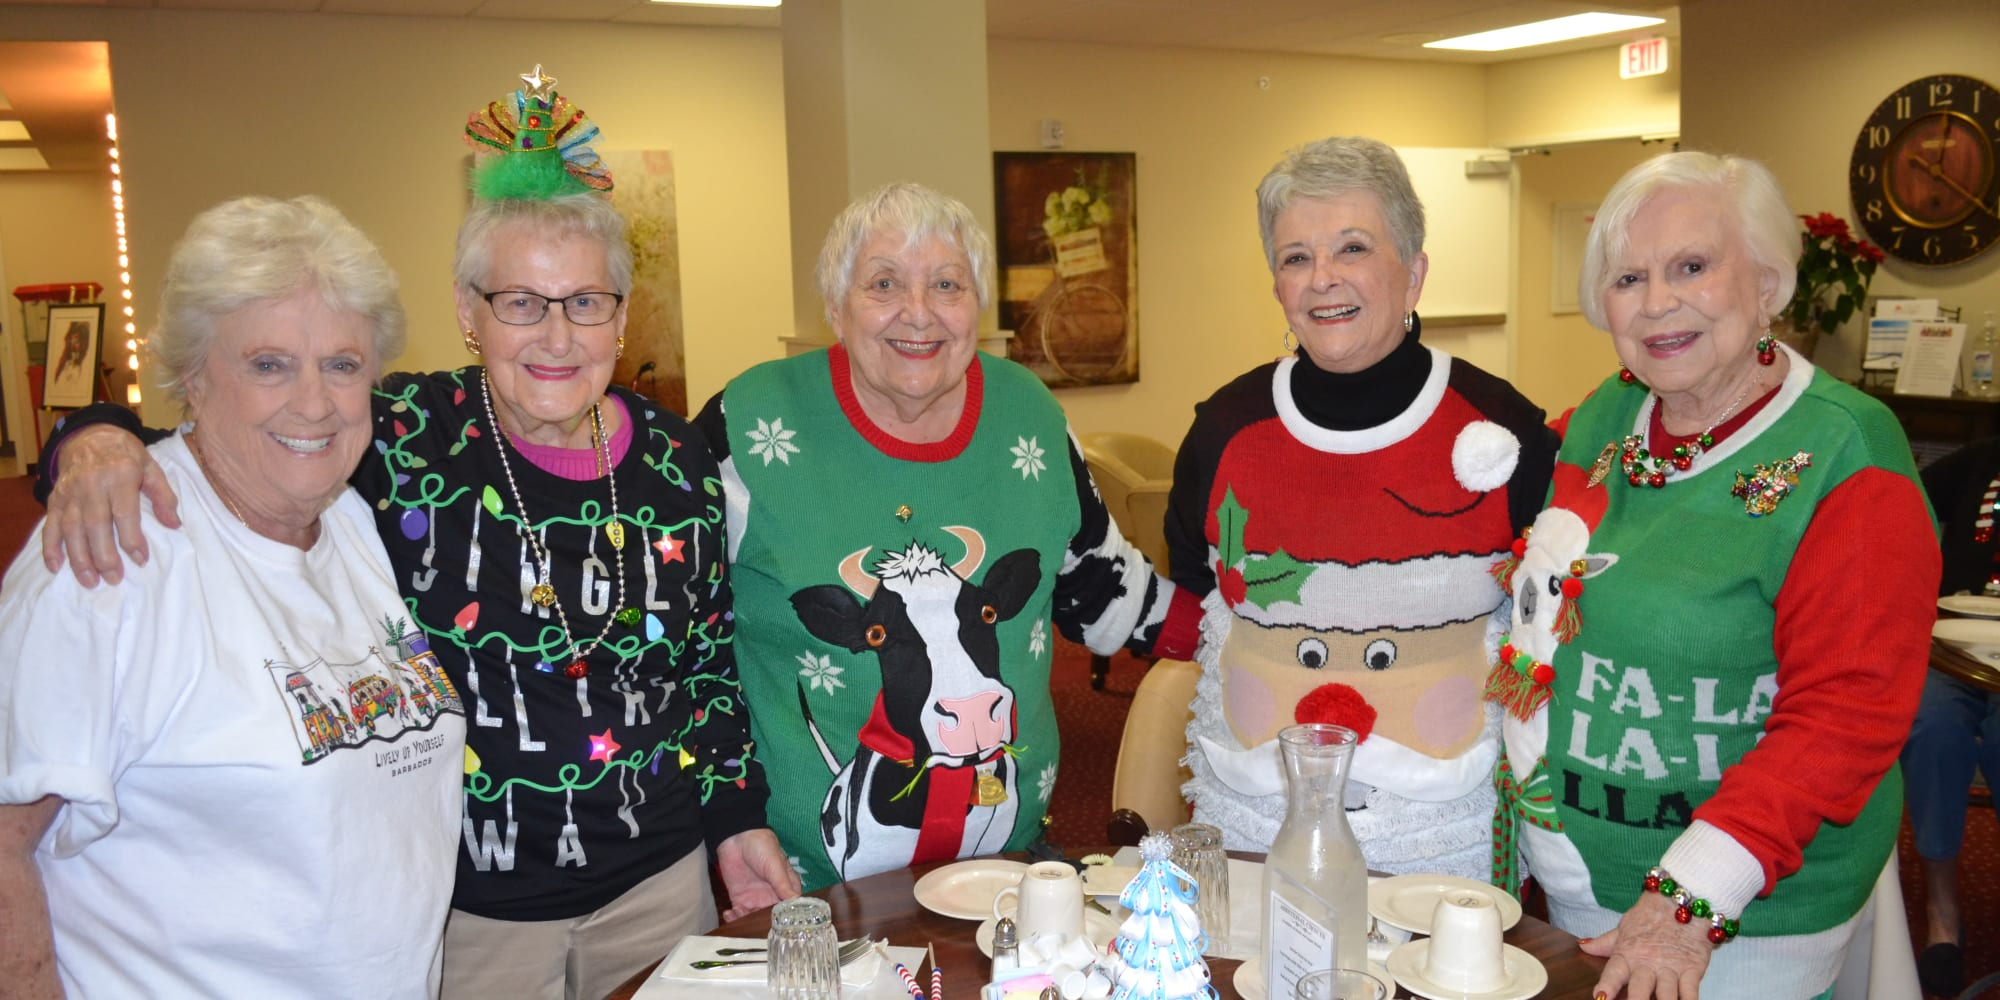 Resident Christmas sweater event at Mulligan Park Gracious Retirement Living in Tallahassee, Florida